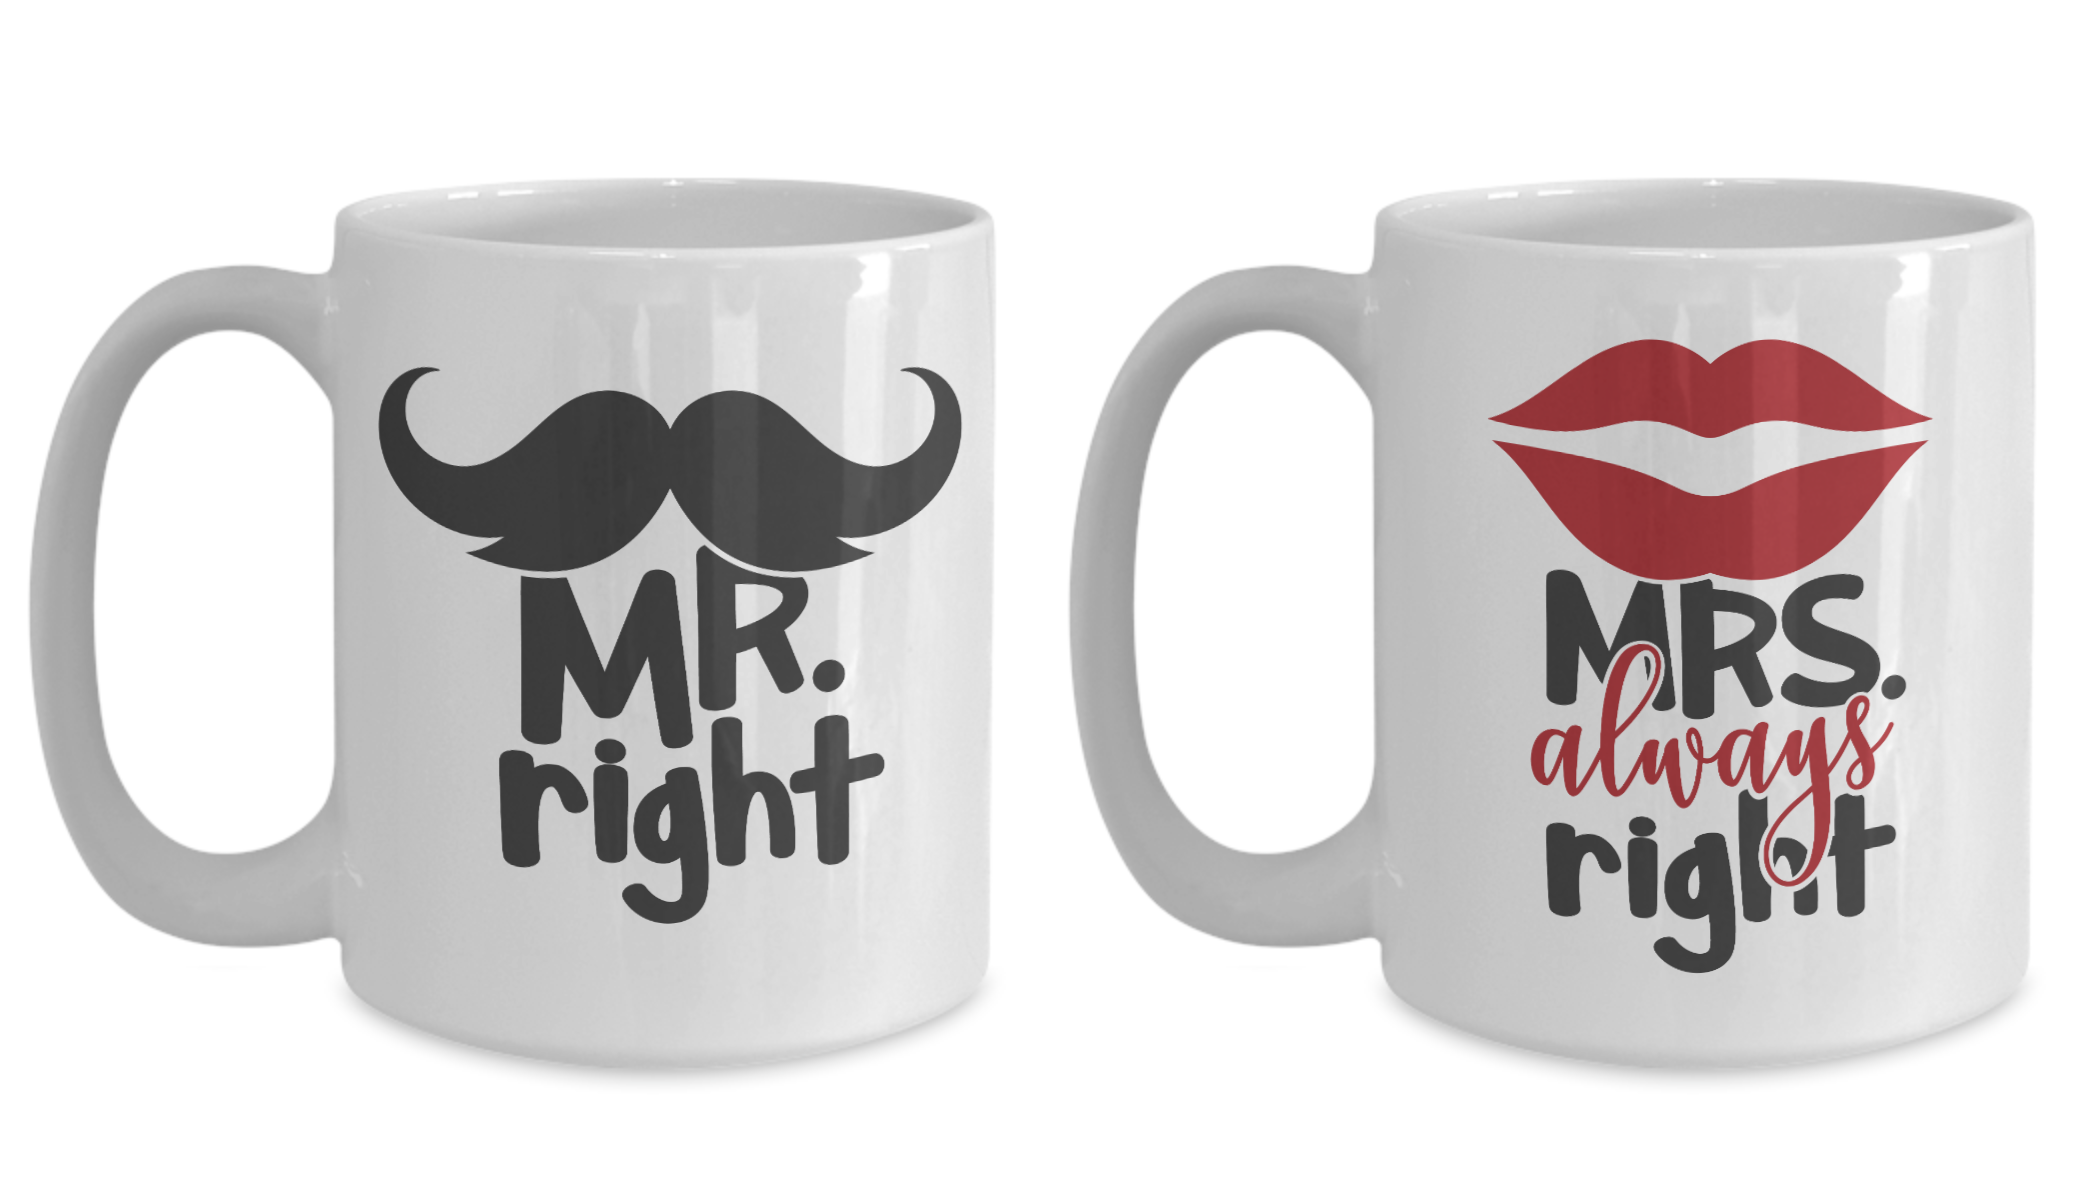 Wedding Gift Ideas For Bride And Groom Mr Right Mrs Always Right Yesecart Wedding Engagement Couples Coffee Mugs Bride Gifts Birthday Quotes Funny For Her